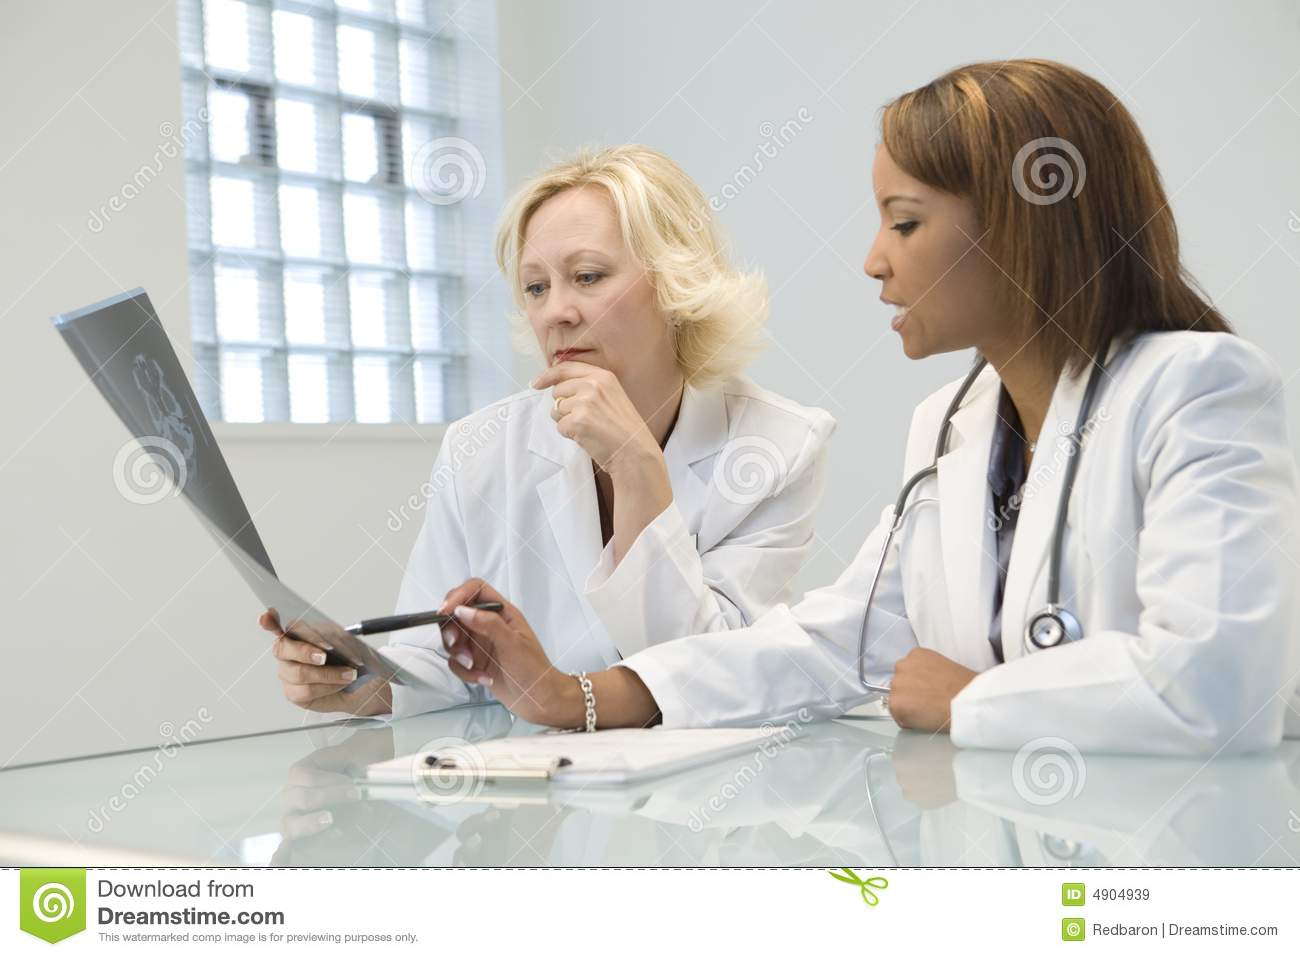 Two female doctors